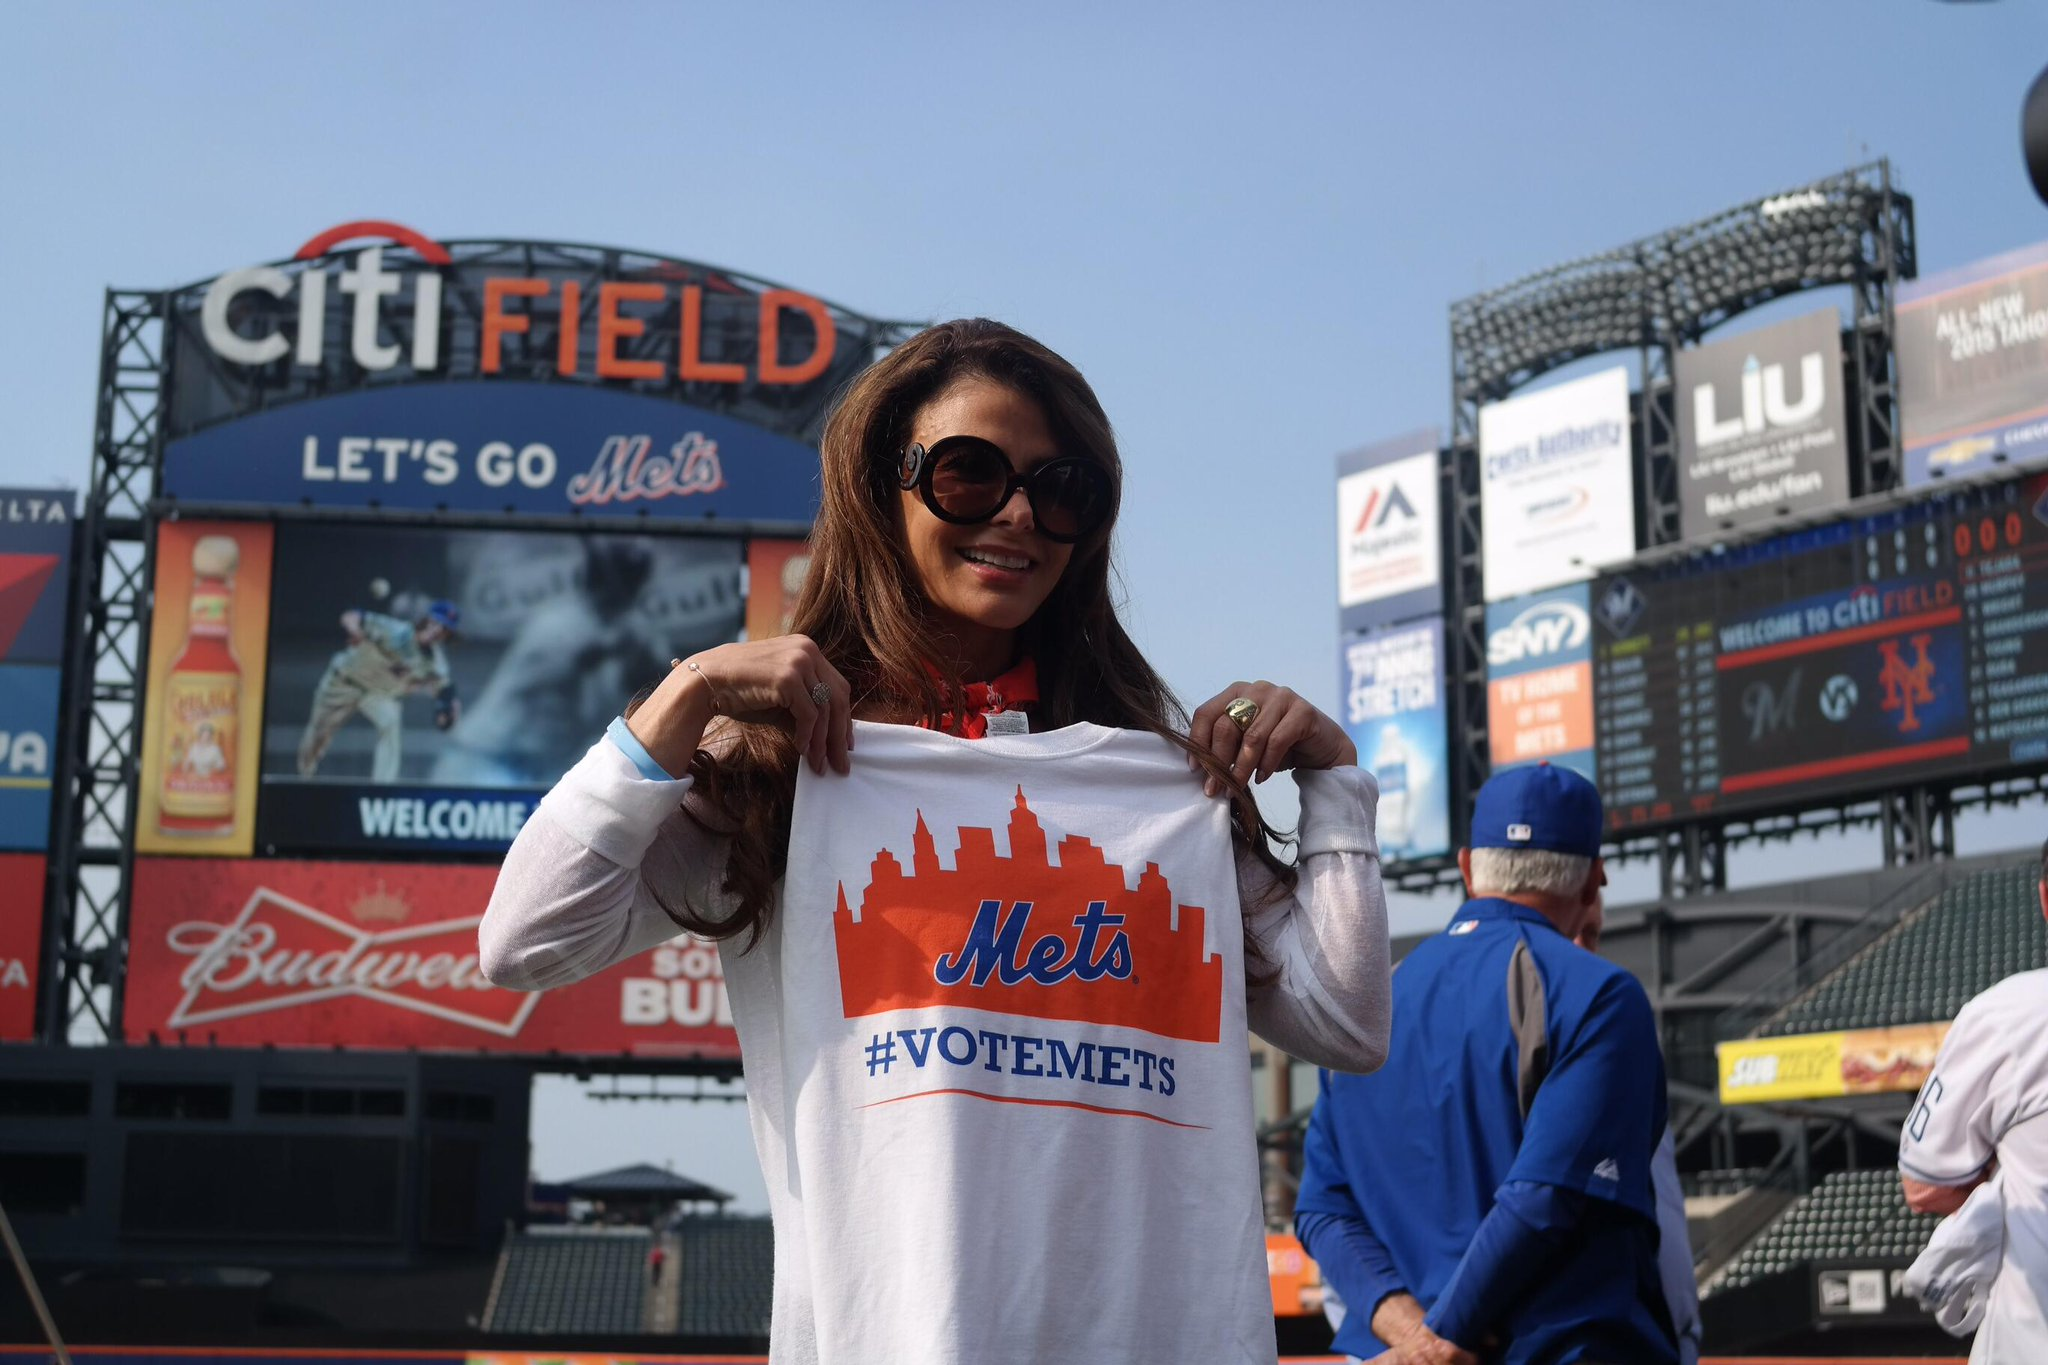 RT @Mets: .@PaulaAbdul knows about voting from X-Factor & American Idol and she wants YOU to #VoteMets! http://t.co/mE9EABk7u4 http://t.co/…